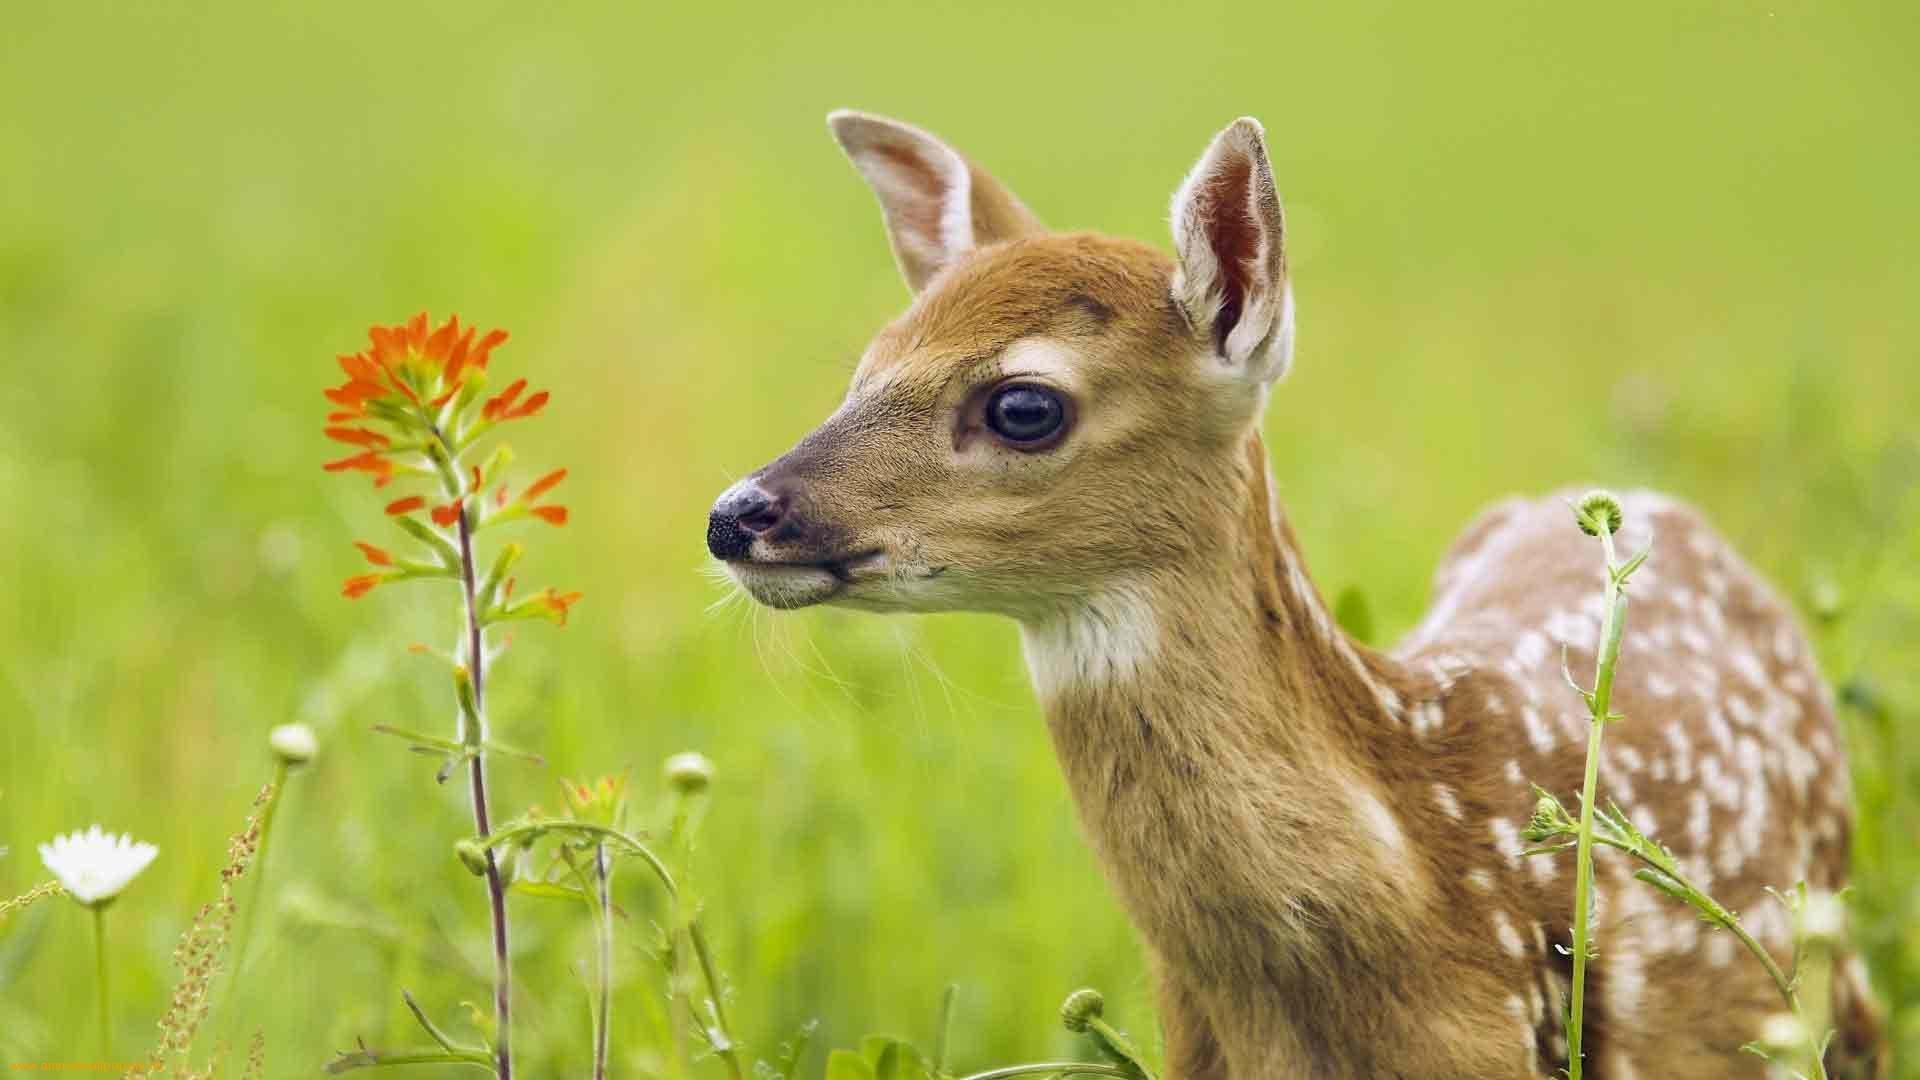 Bambi Deer and a Flower 369.67 Kb